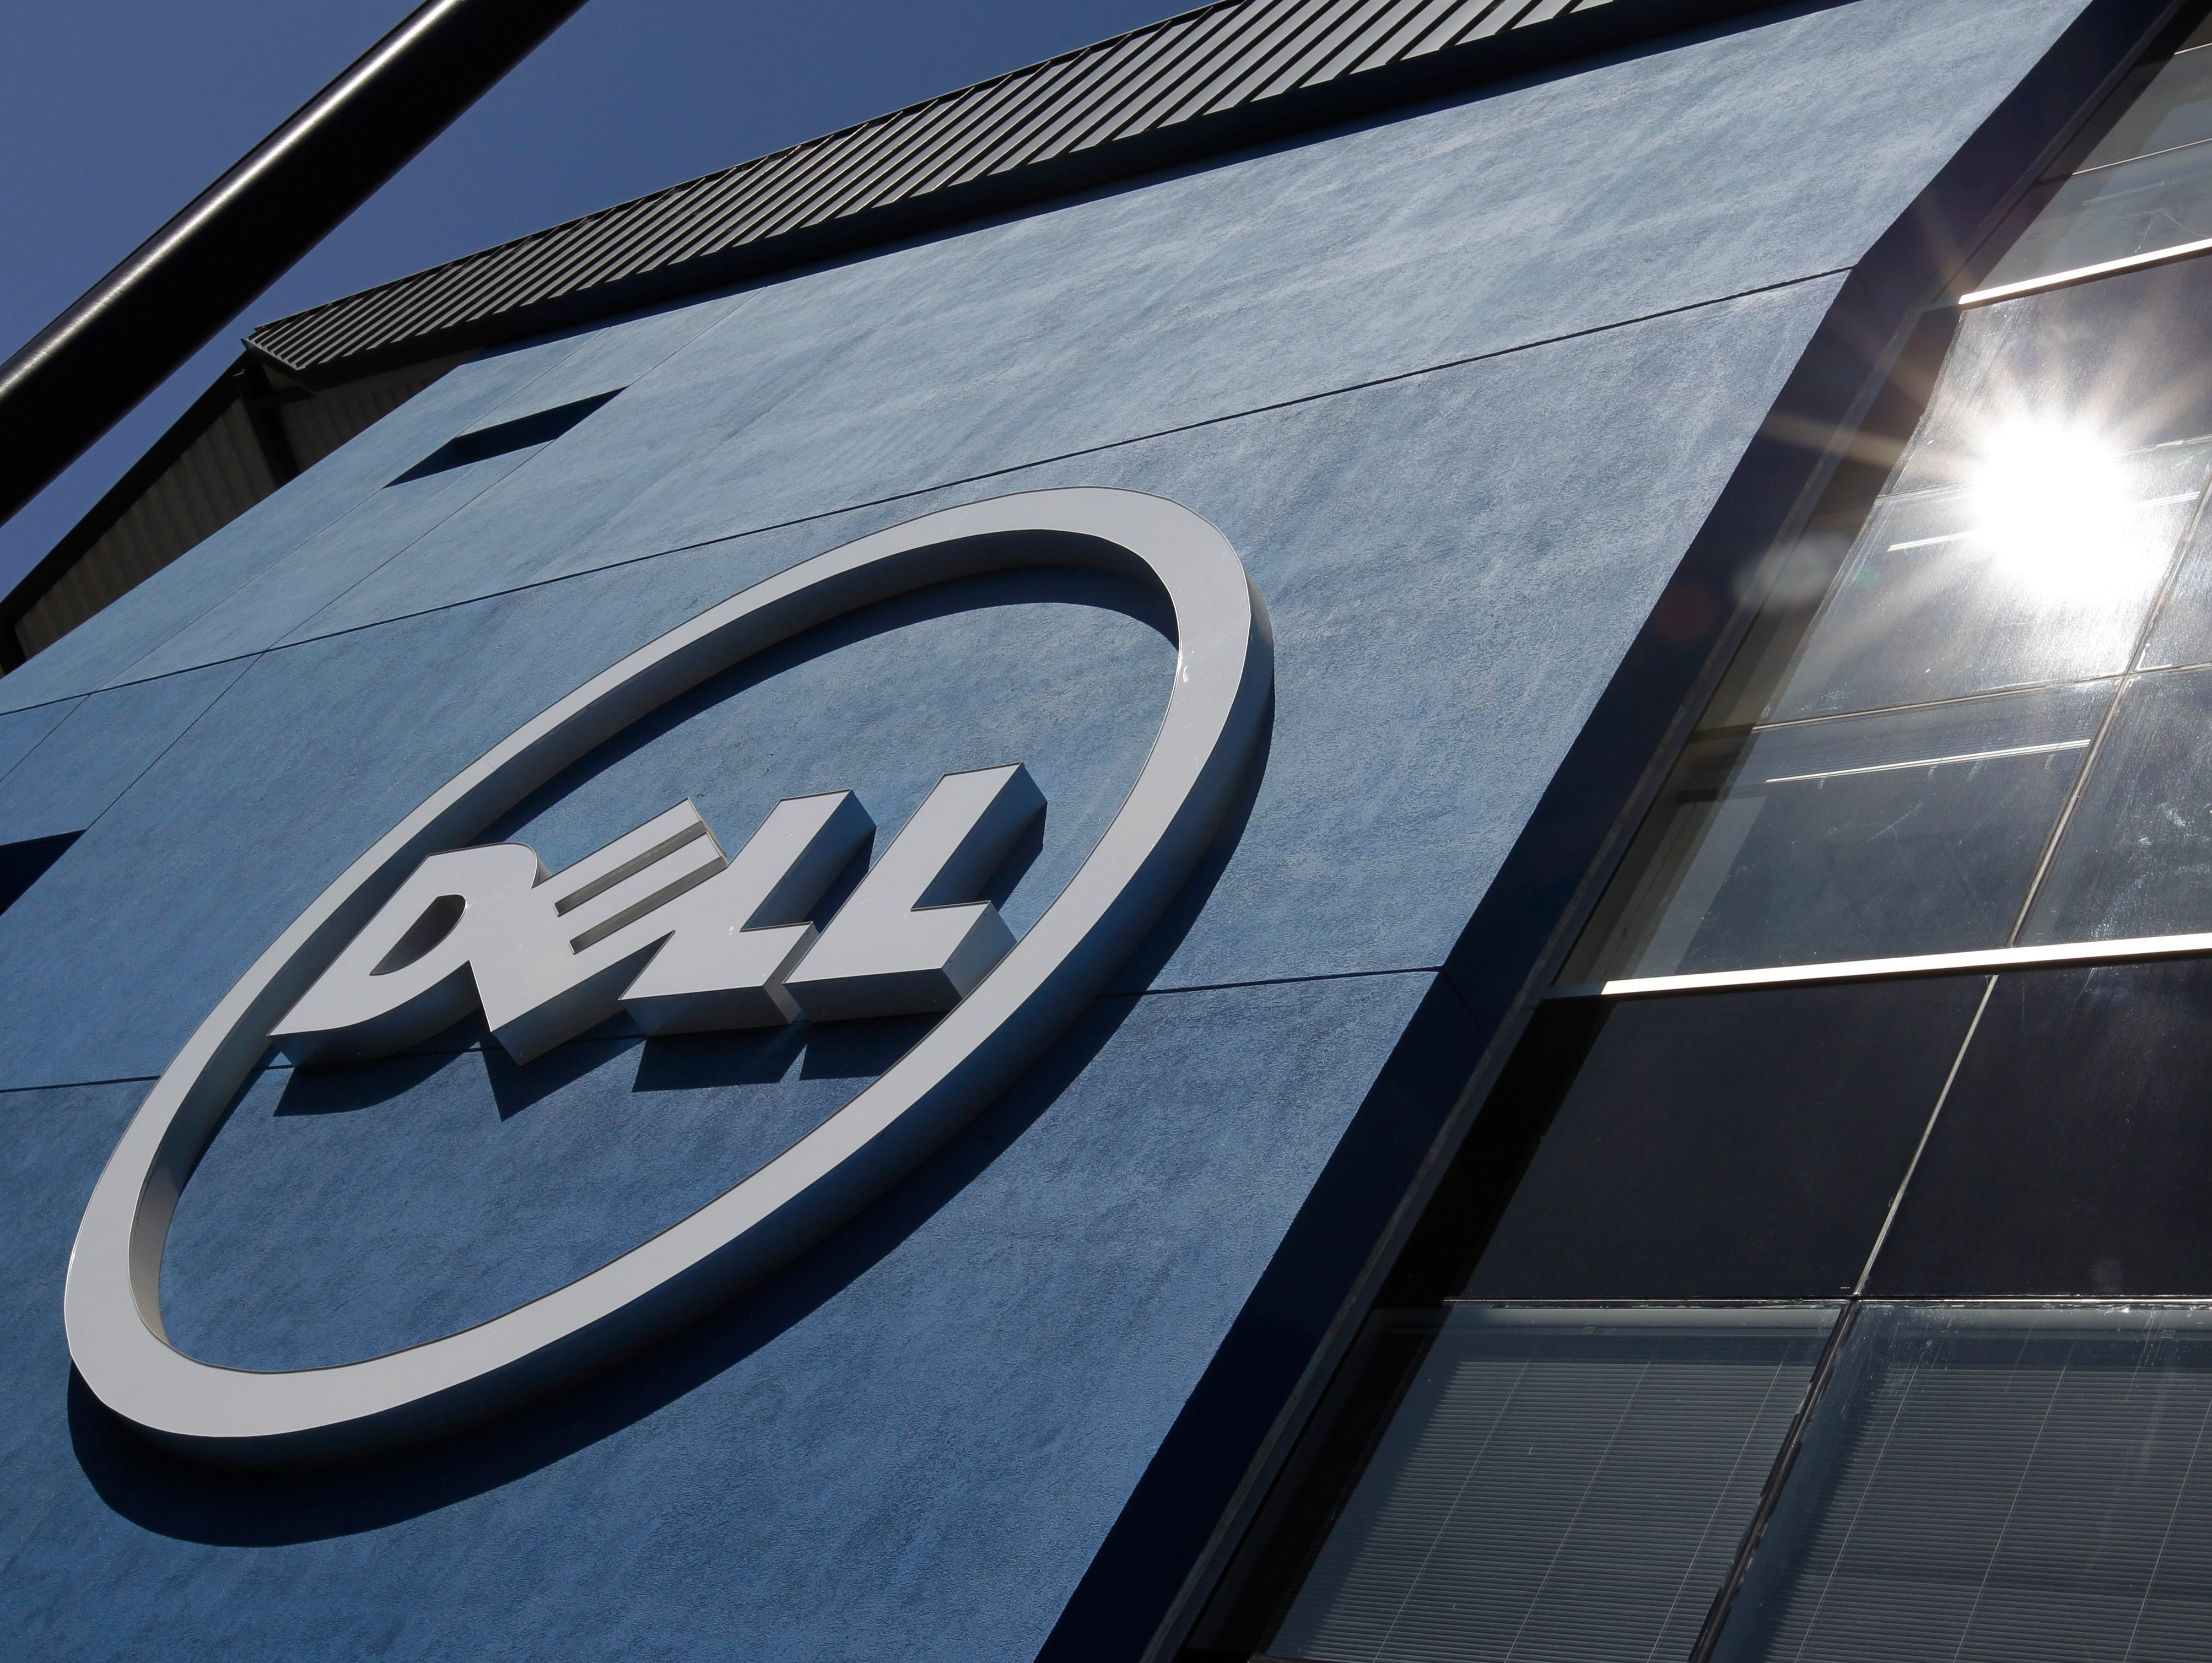 The exterior of Dell Inc.'s offices in Santa Clara, Calif.